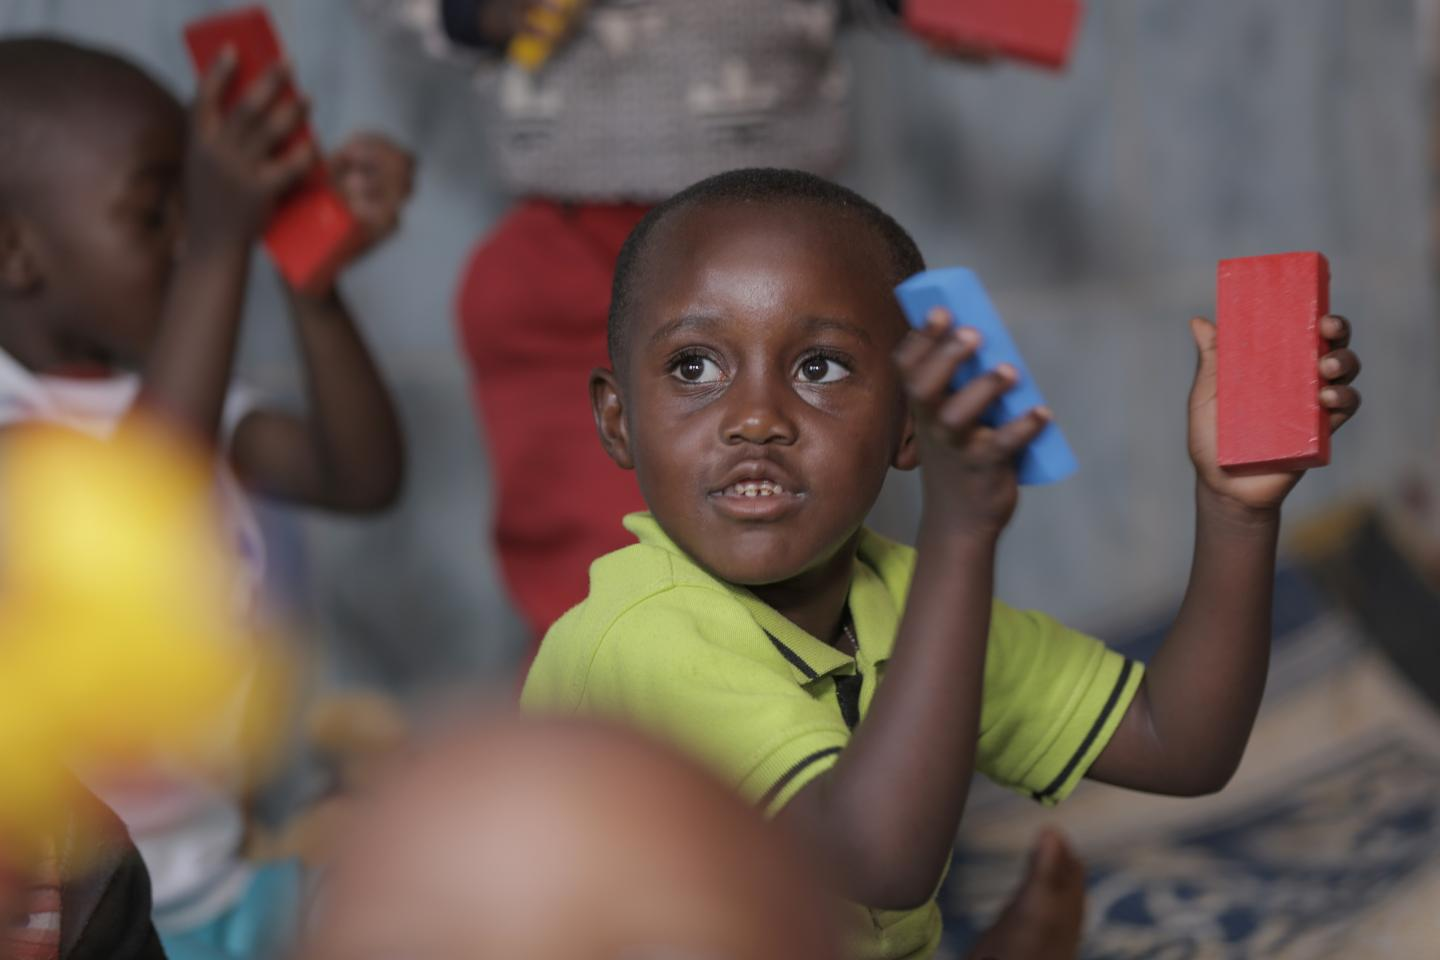 A young boy plays and learns with blocks in an early childhood development centre in Rwanda.